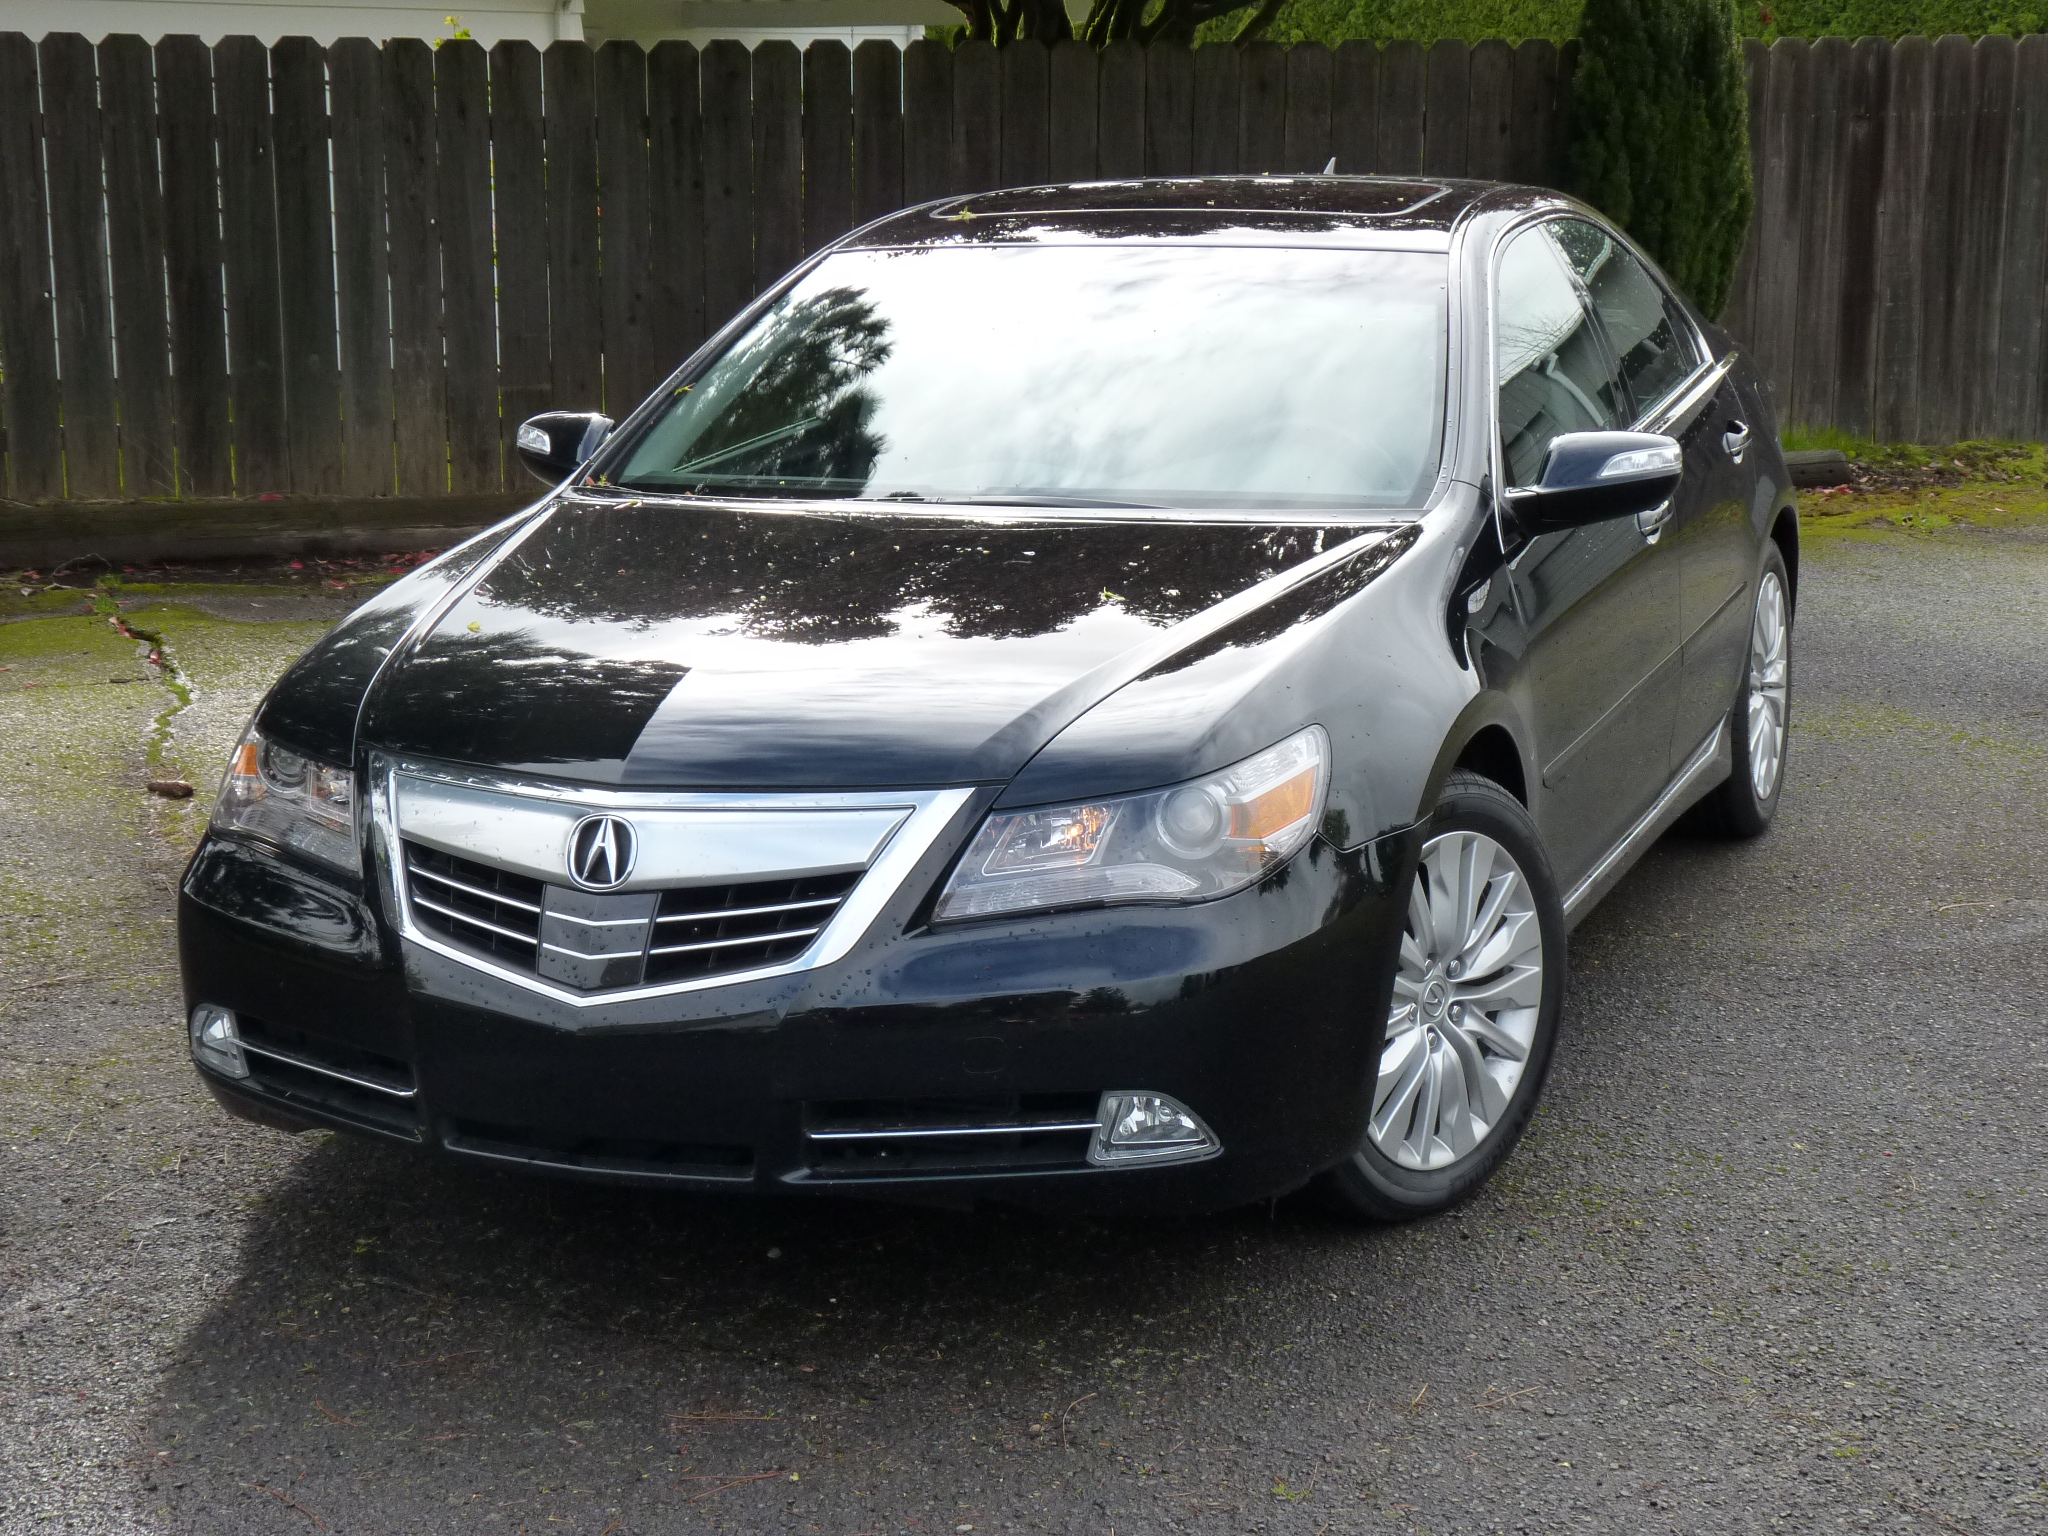 wtechcmbsacc awd l htm stock acura rl used sale acc for c w sh package cmbs tech